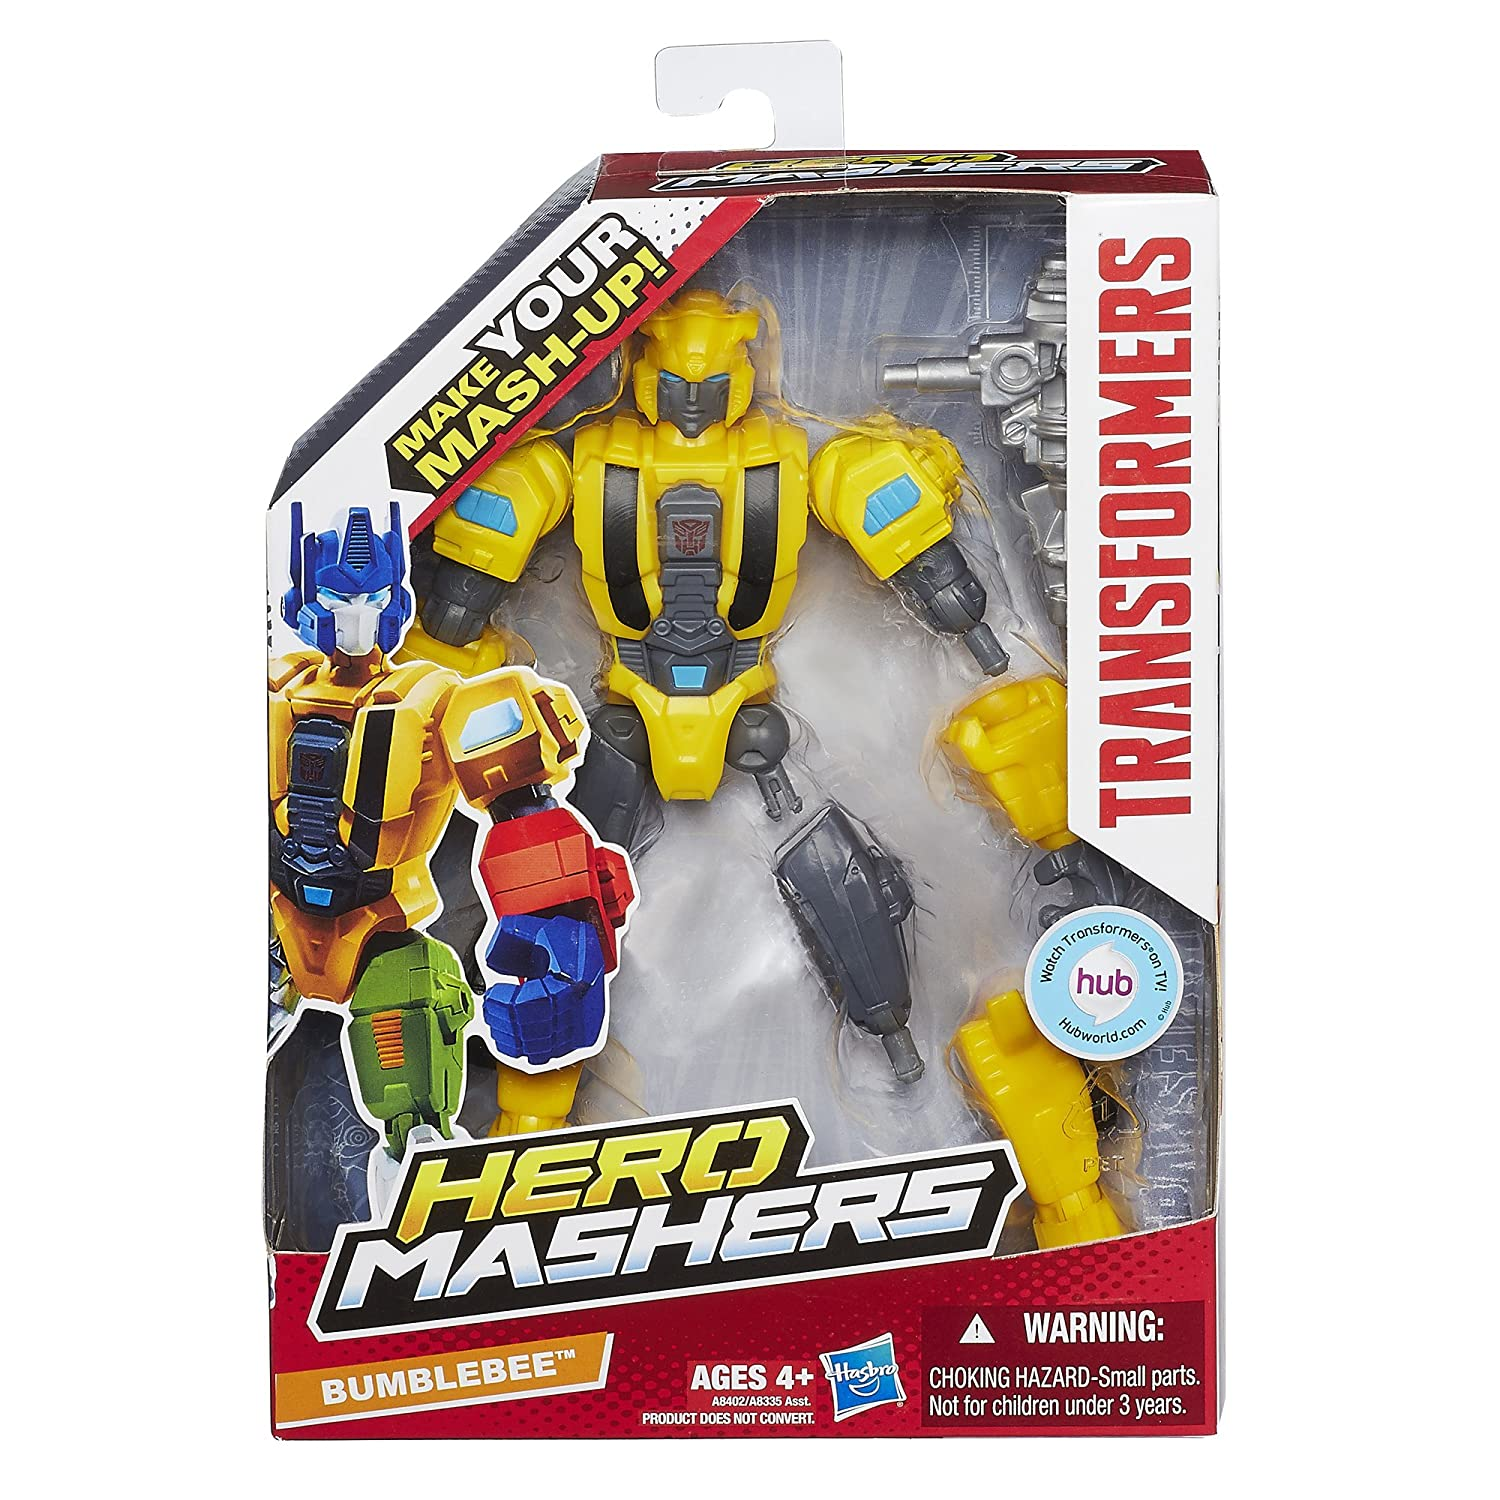 amazon com transformers hero mashers bumblebee figure toys u0026 games